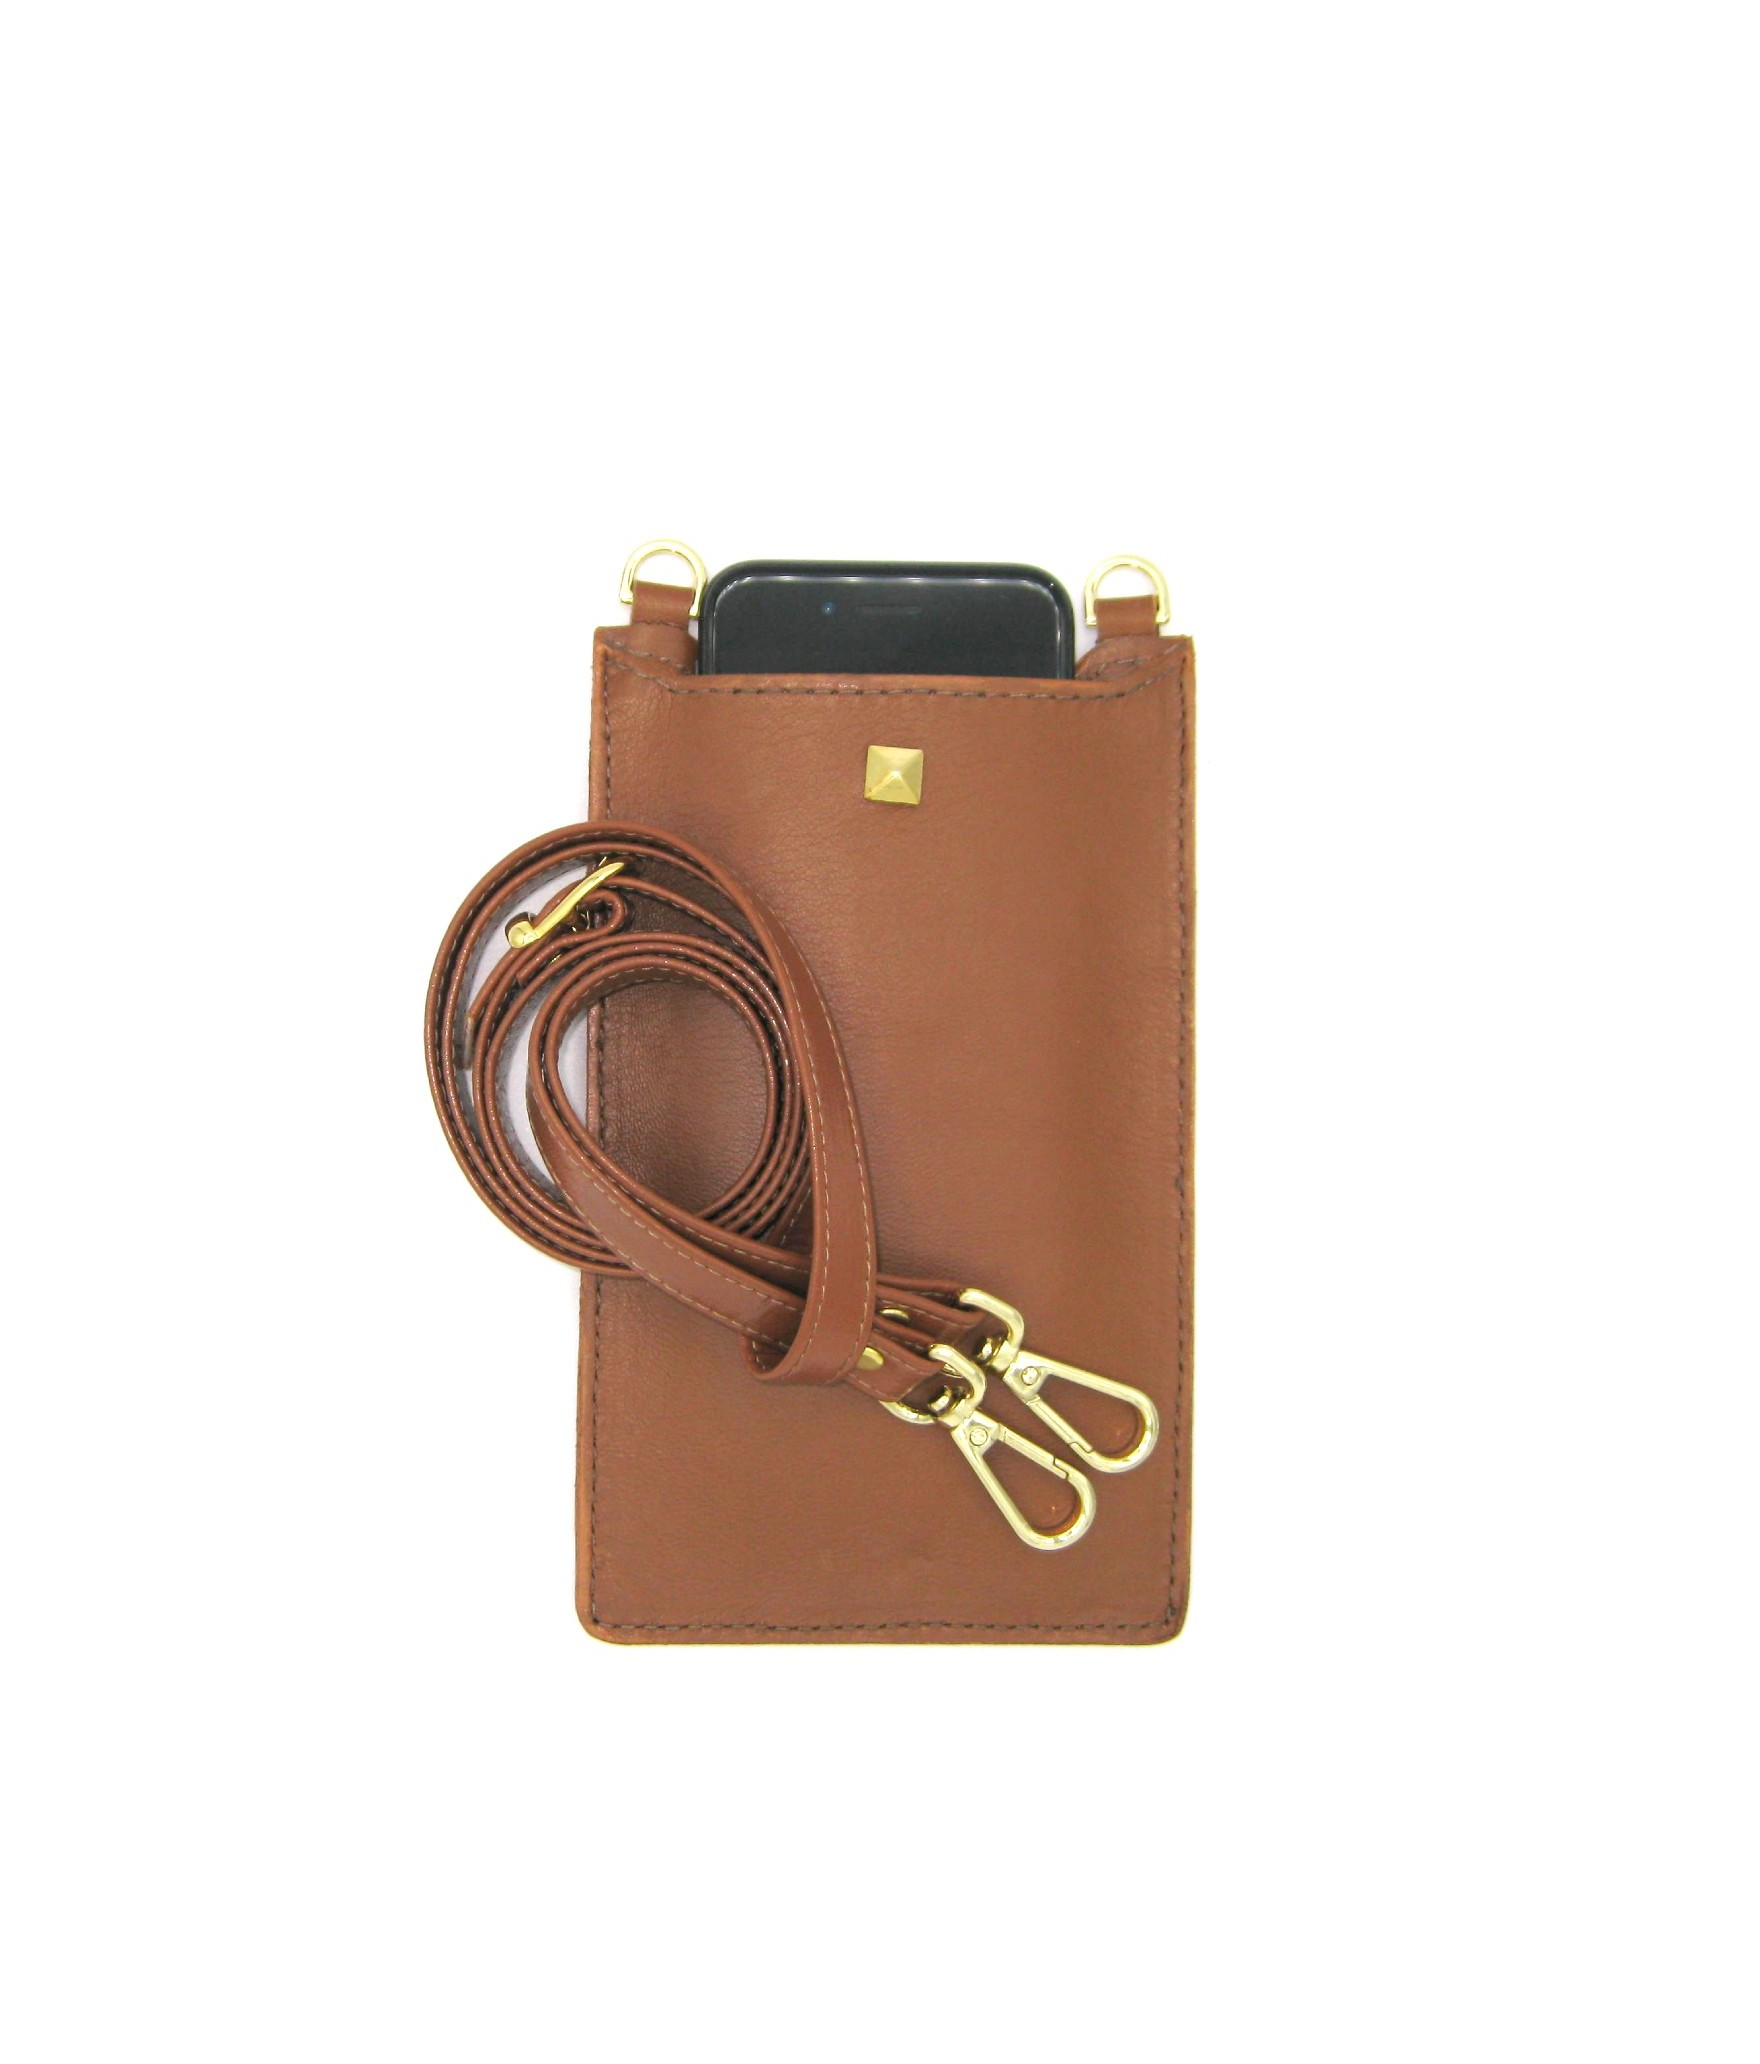 Cell Phone Holder in Nappa leather Tan/Stud+Hooks Gold